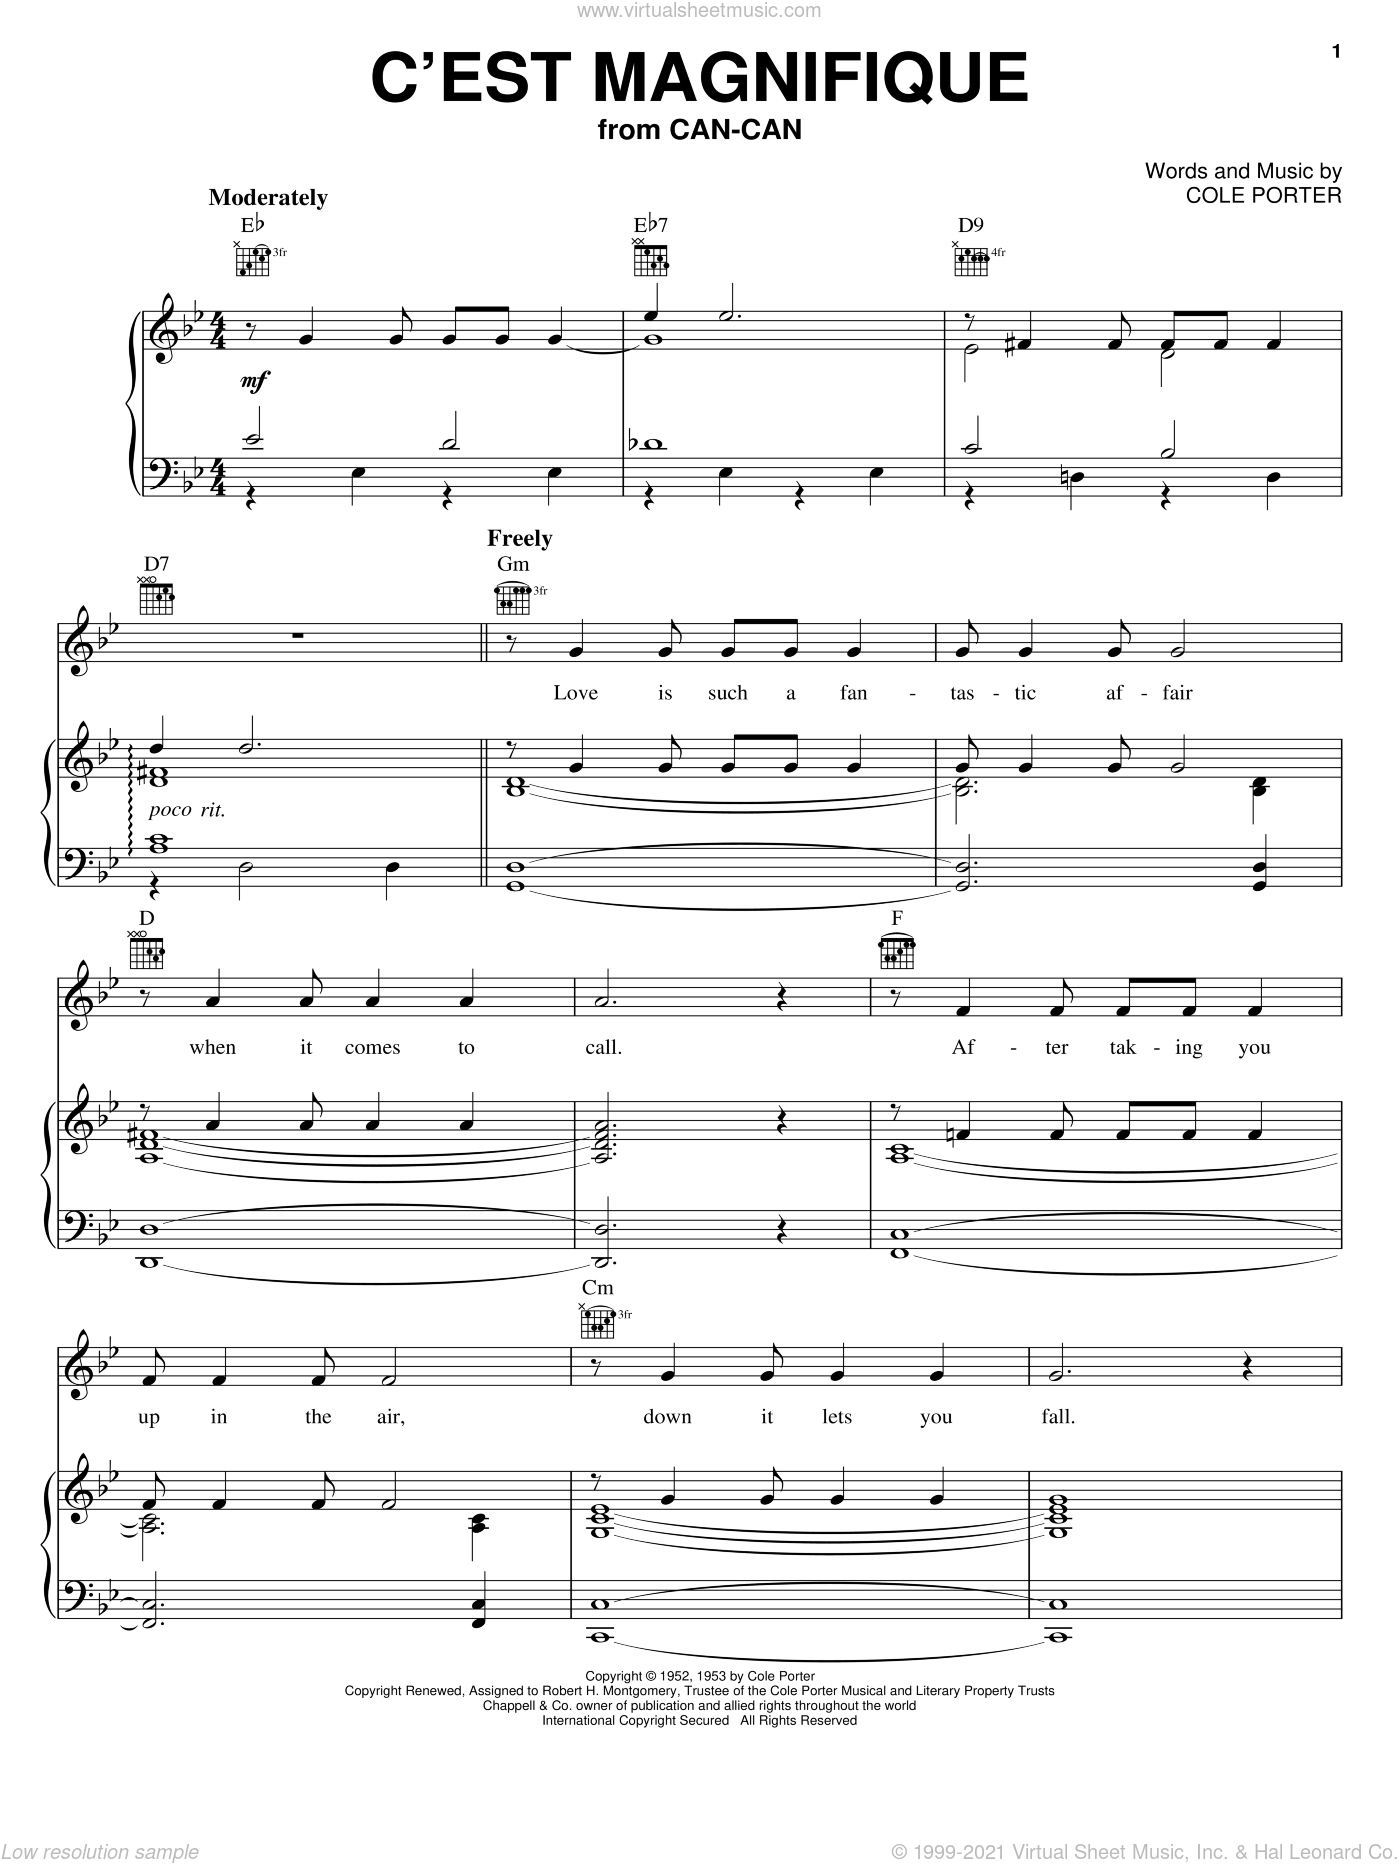 C'est Magnifique sheet music for voice, piano or guitar by Cole Porter